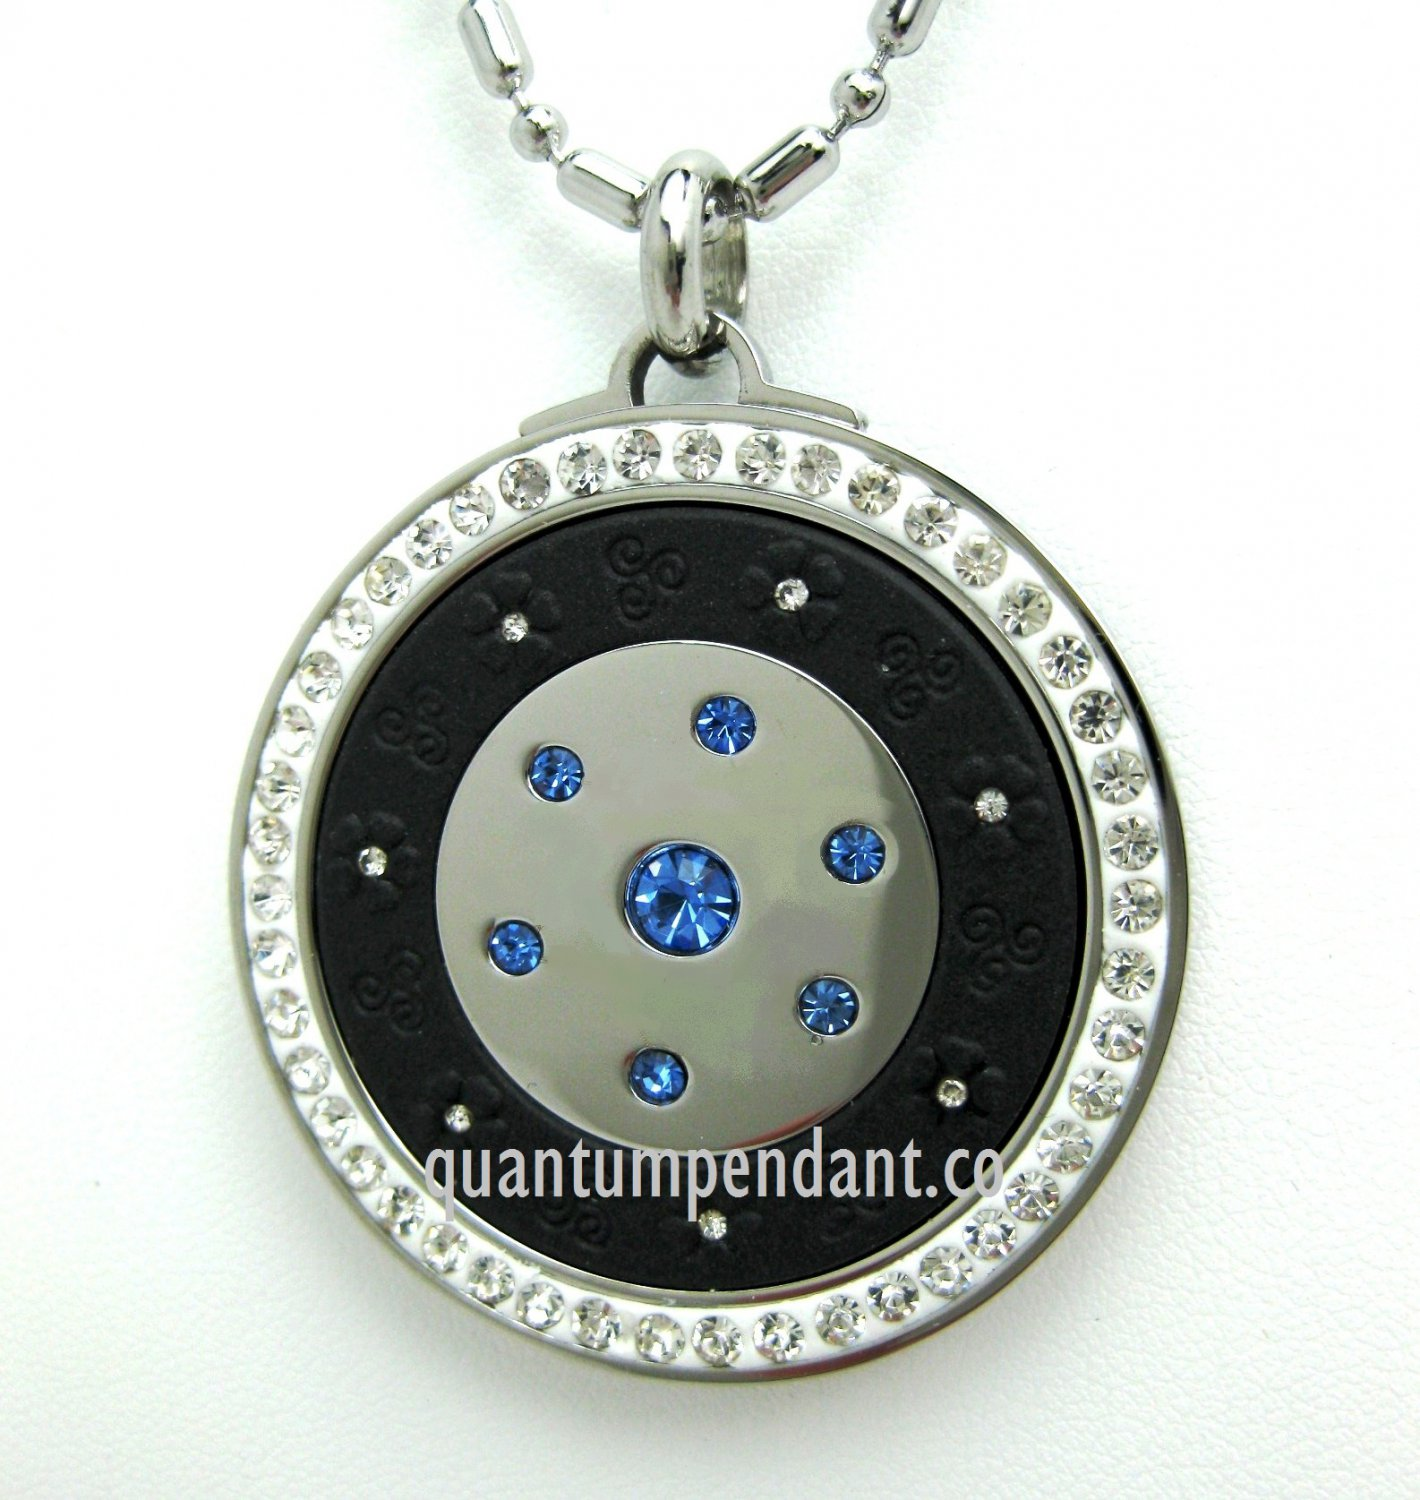 QP12B Quantum Pendant Scalar Energy Limited Edition Blue 2500 Neg Ions